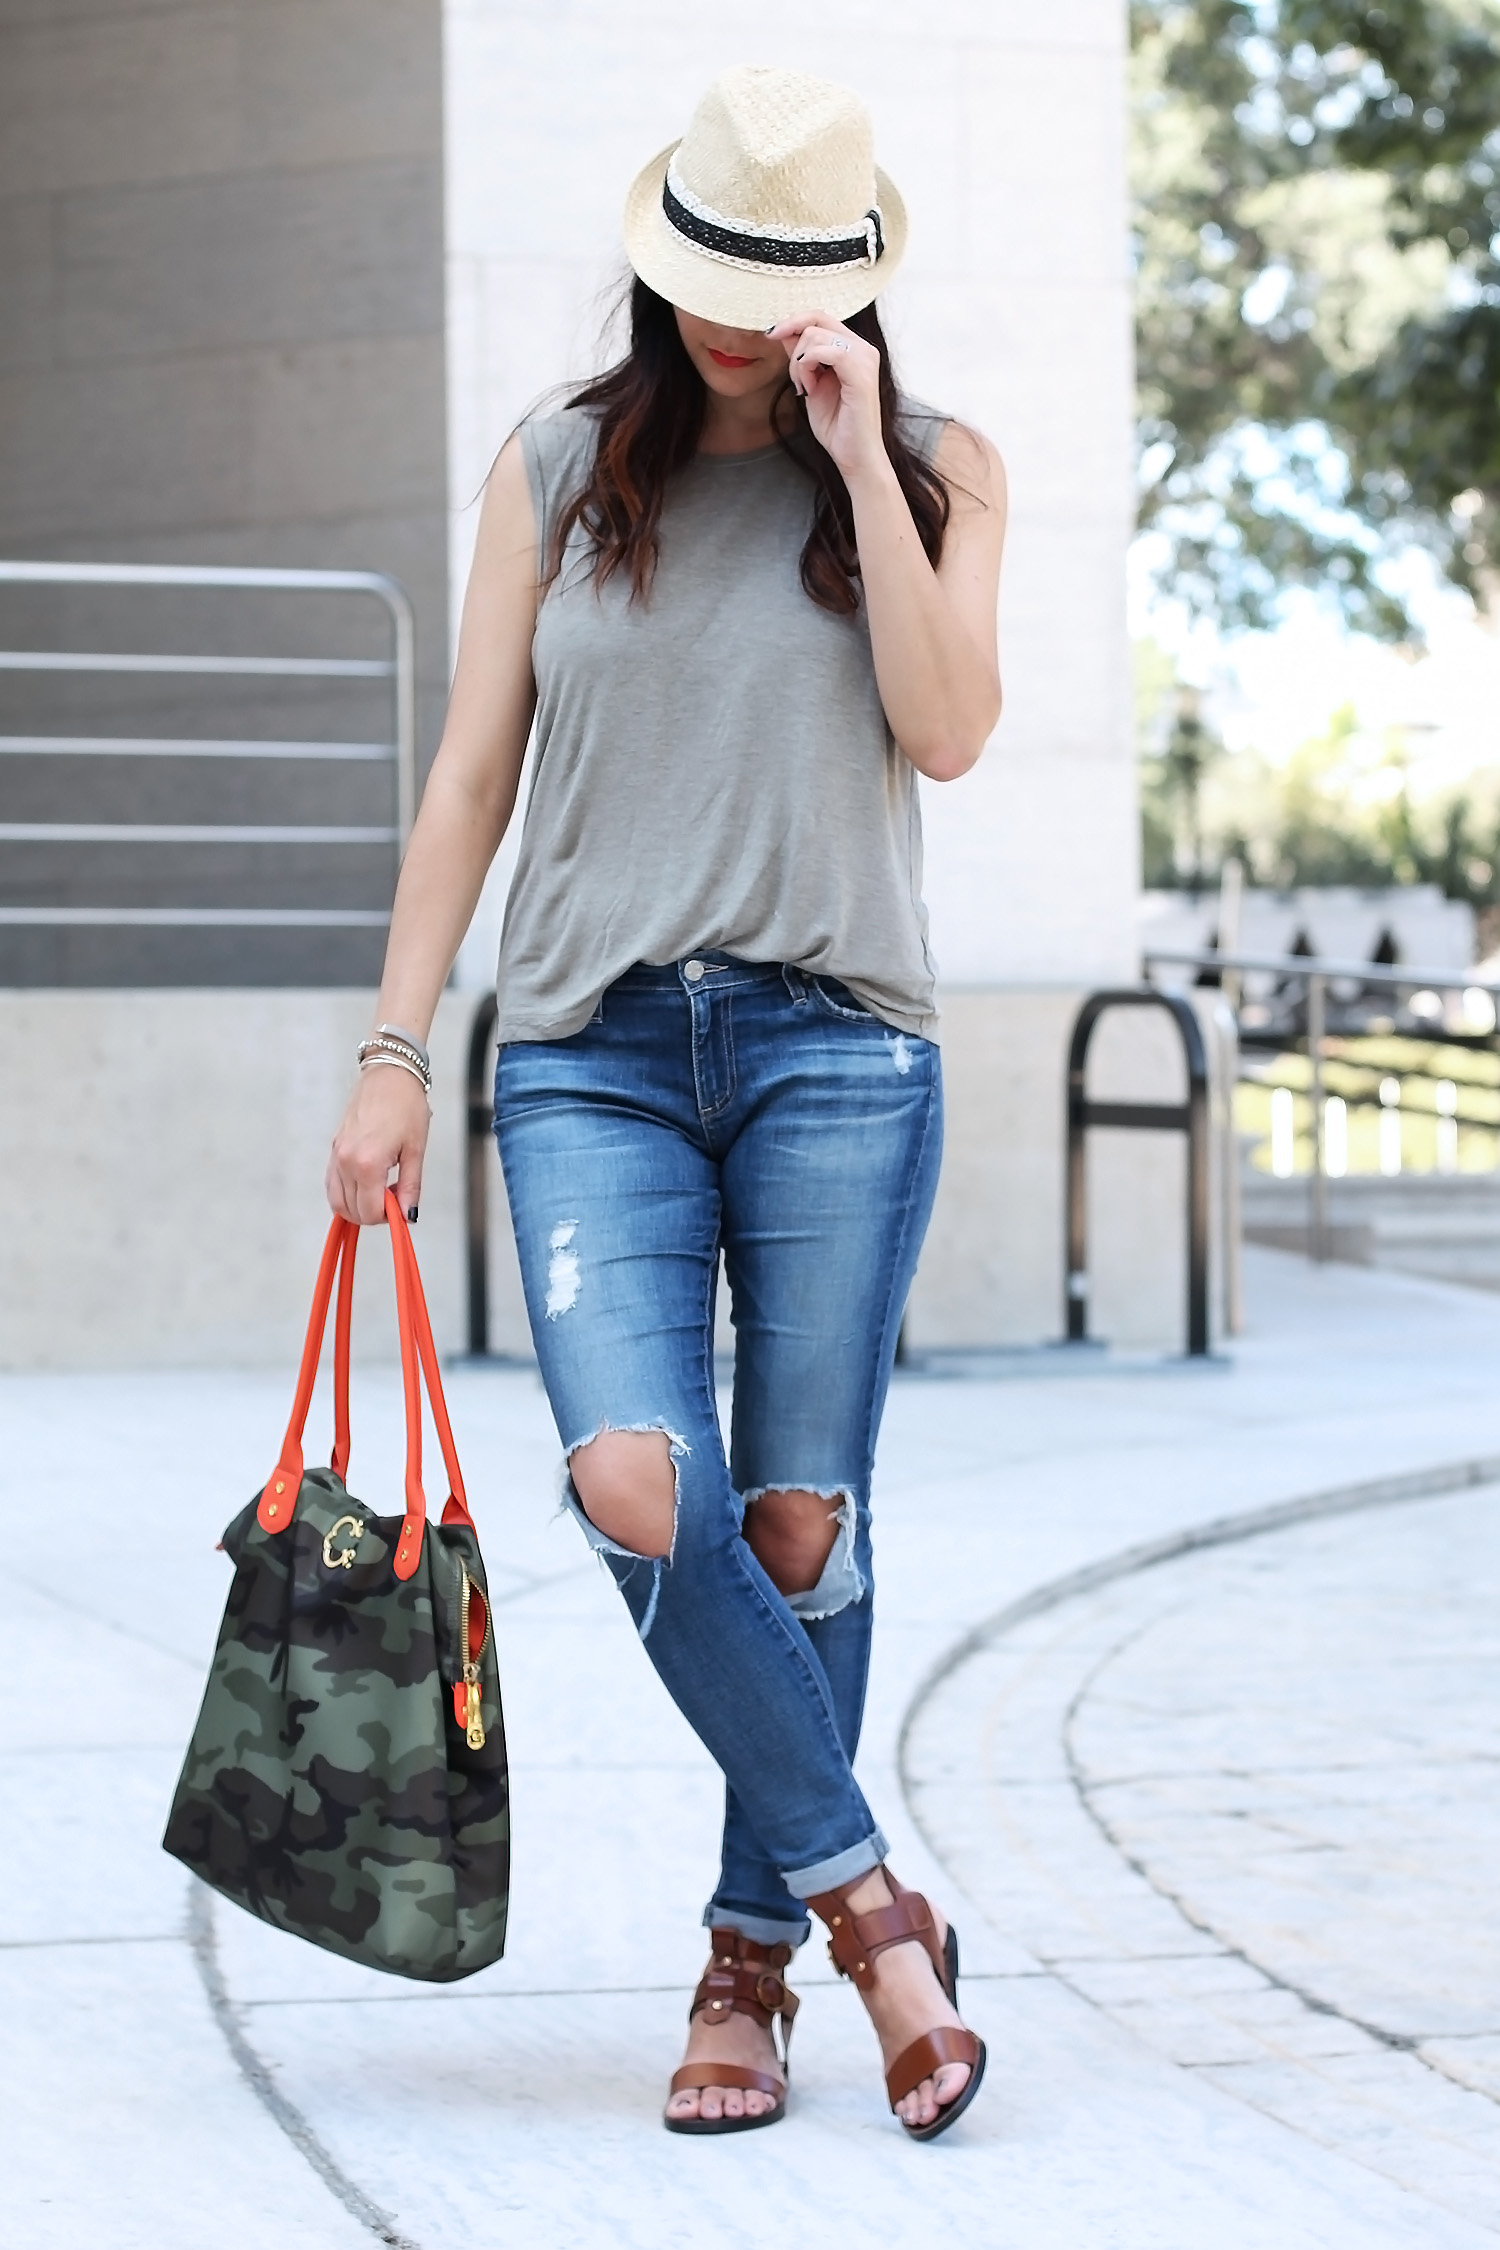 Zara Sandals, AG Jeans, Anthropologie Hat, C. Wonder Tote